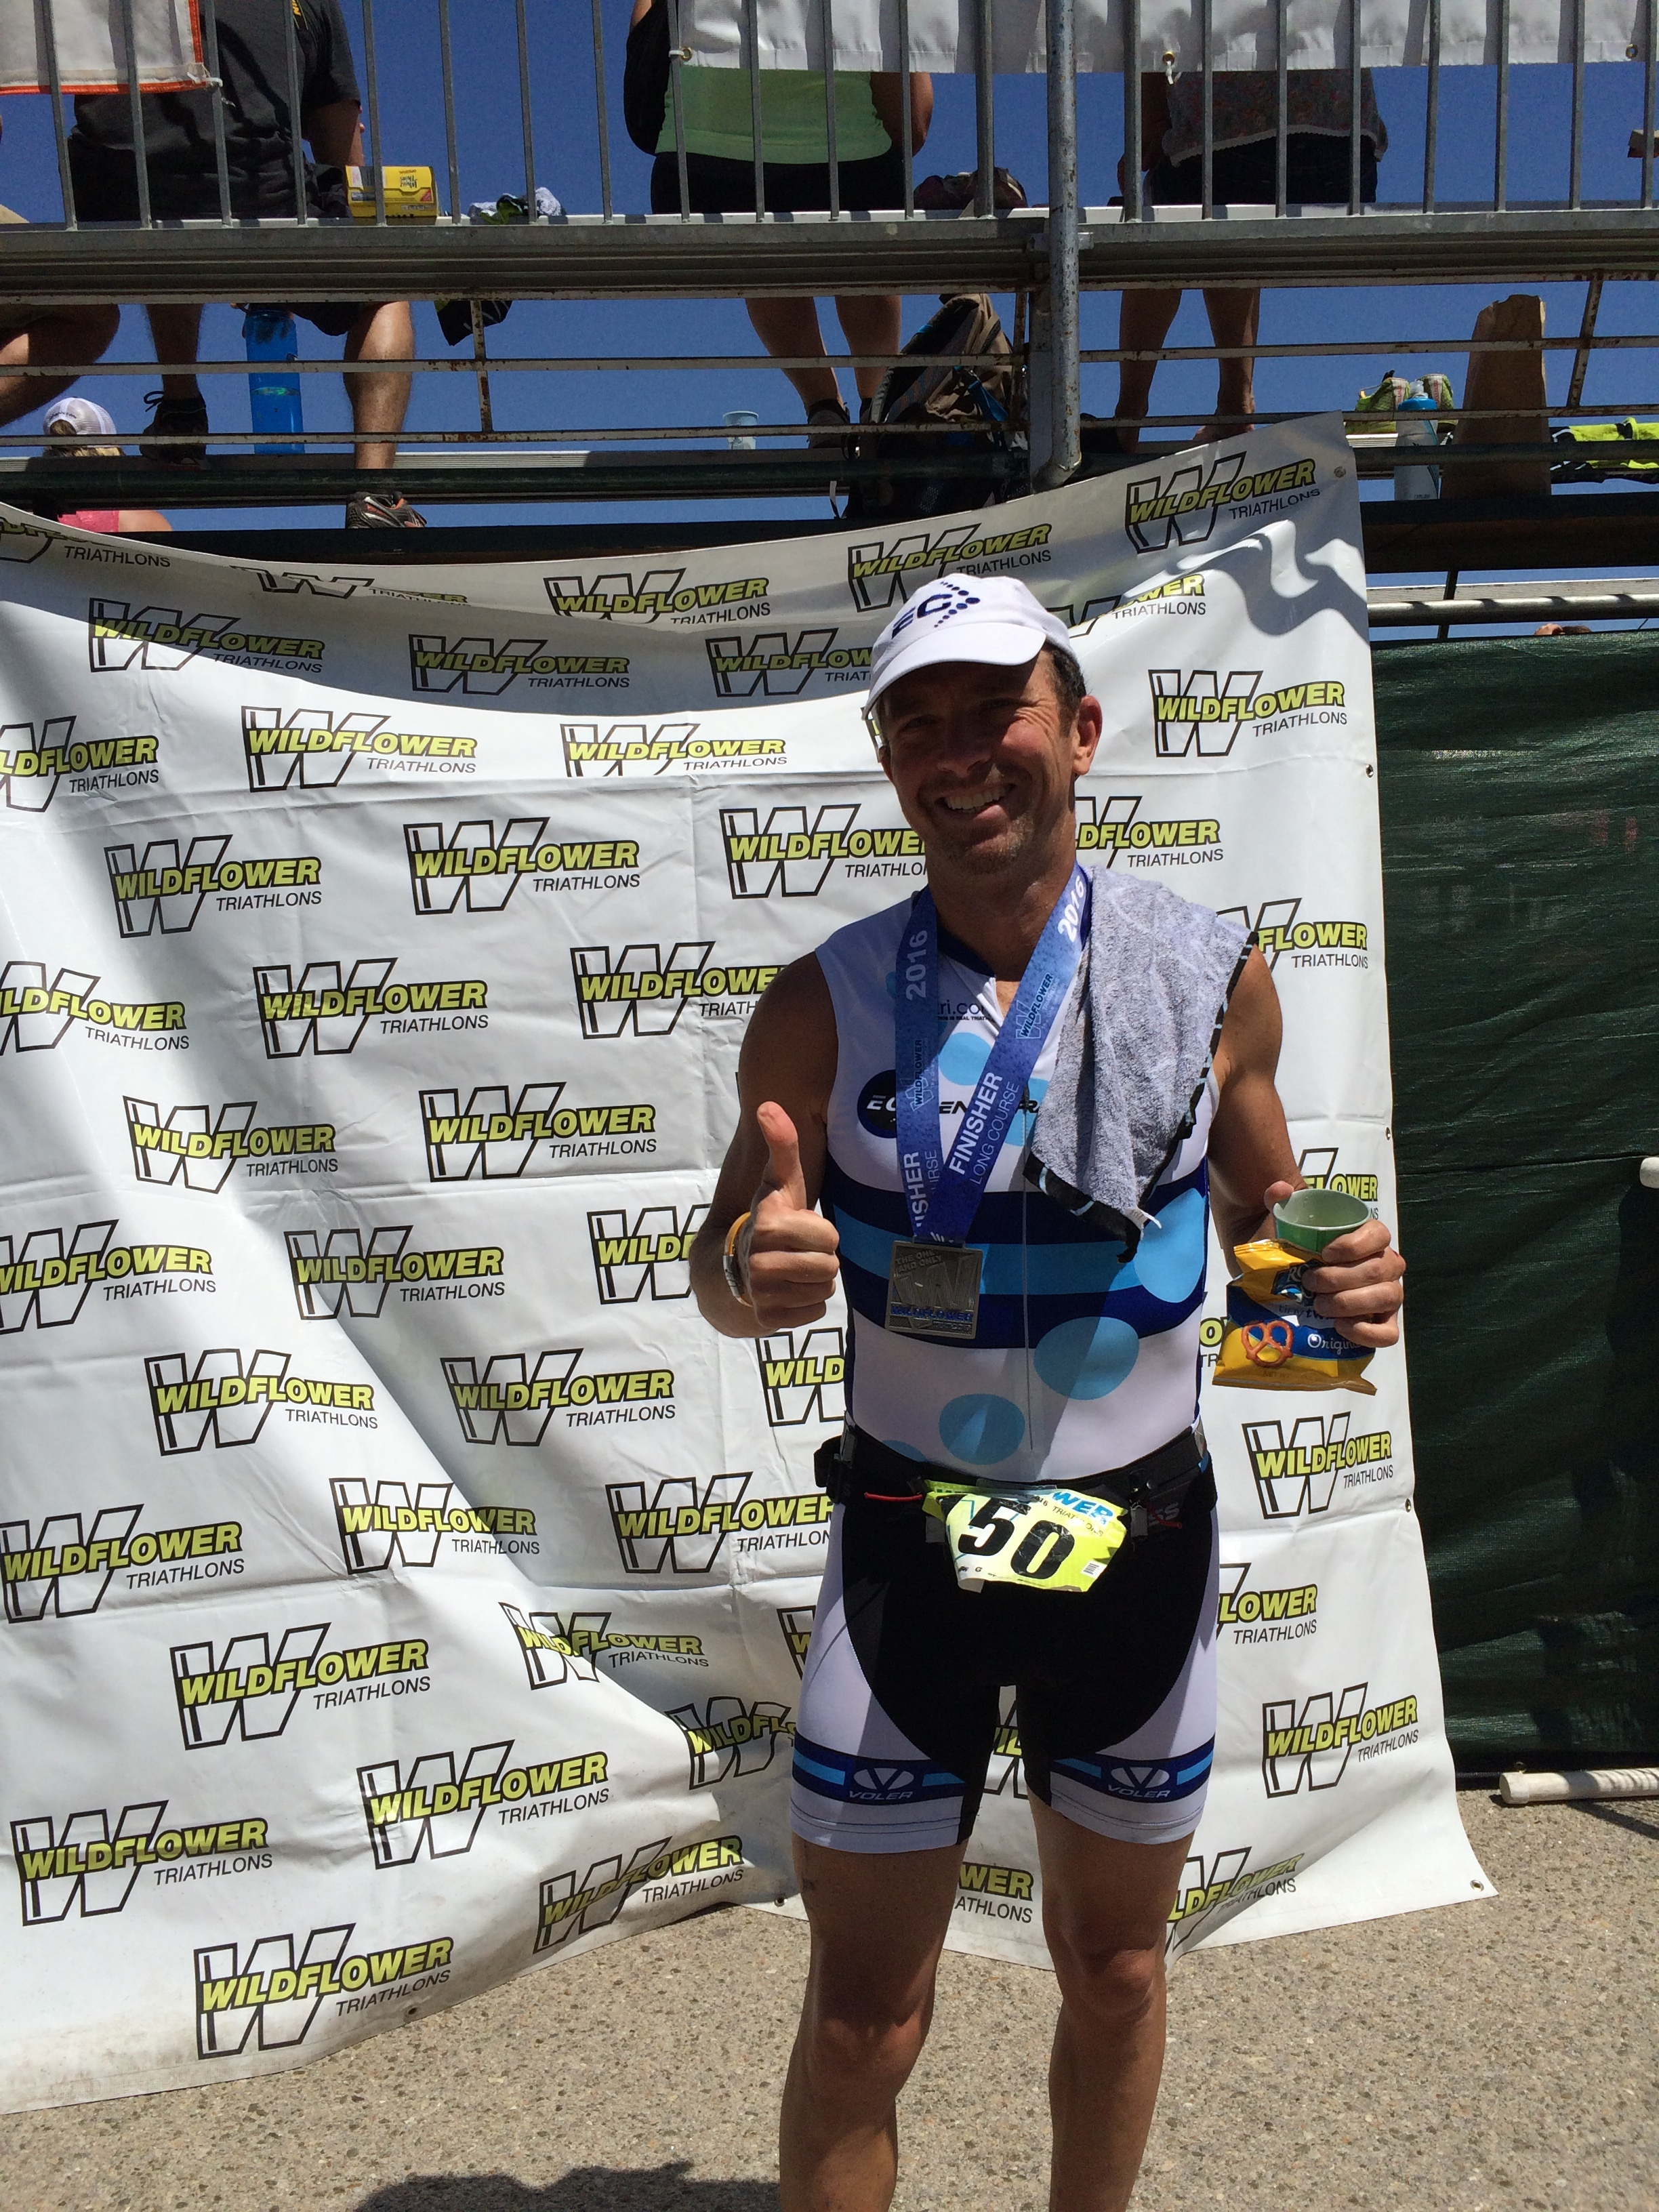 Petro came through 2nd in his age group off of <10 miles of run training per week as bike racing has been his main gig this year.